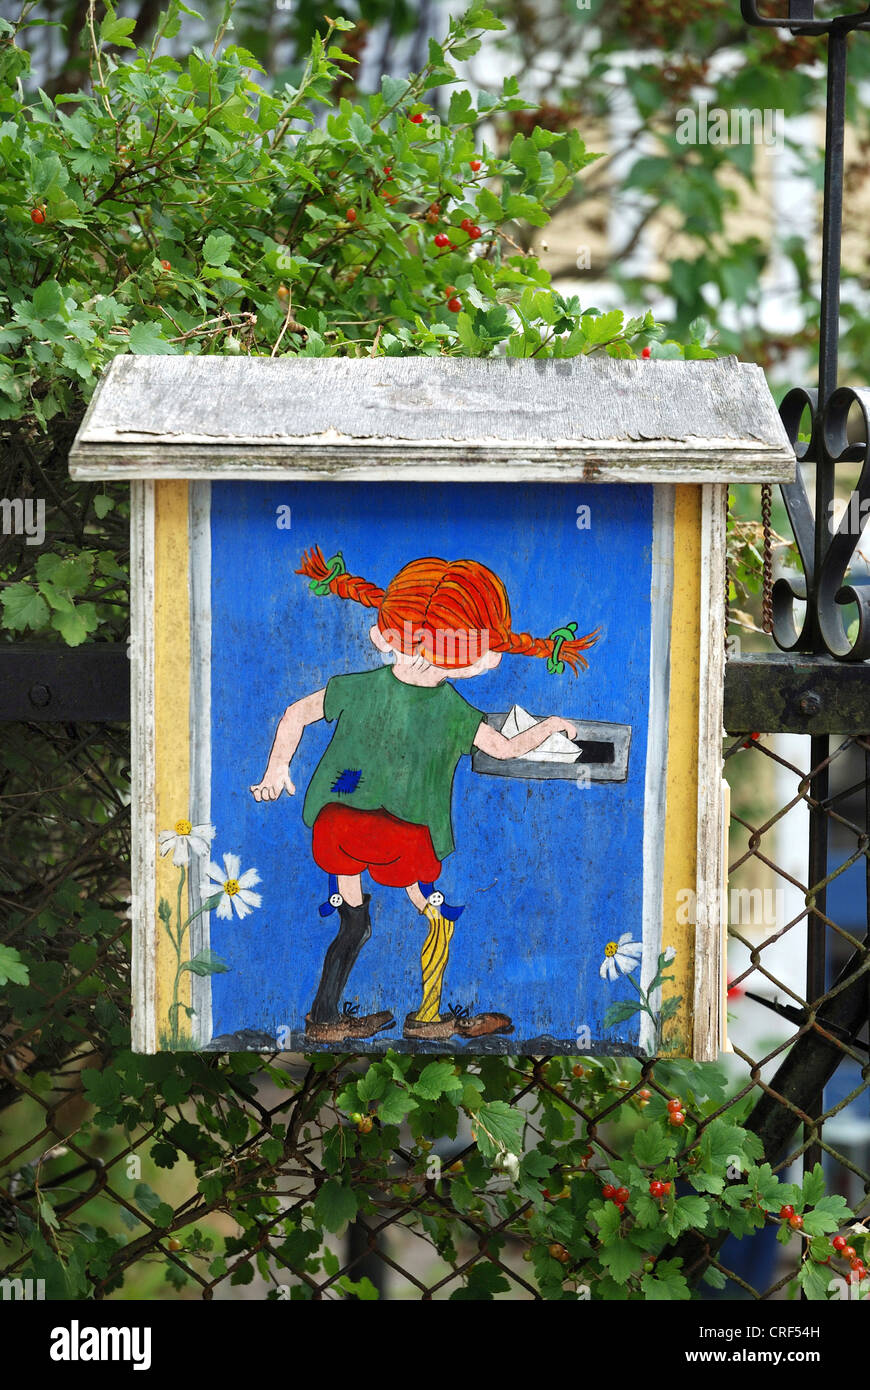 Pippi Longstocking drop a letter - painting on mailbox, Sweden, Smaland, Vimmerby - Stock Image